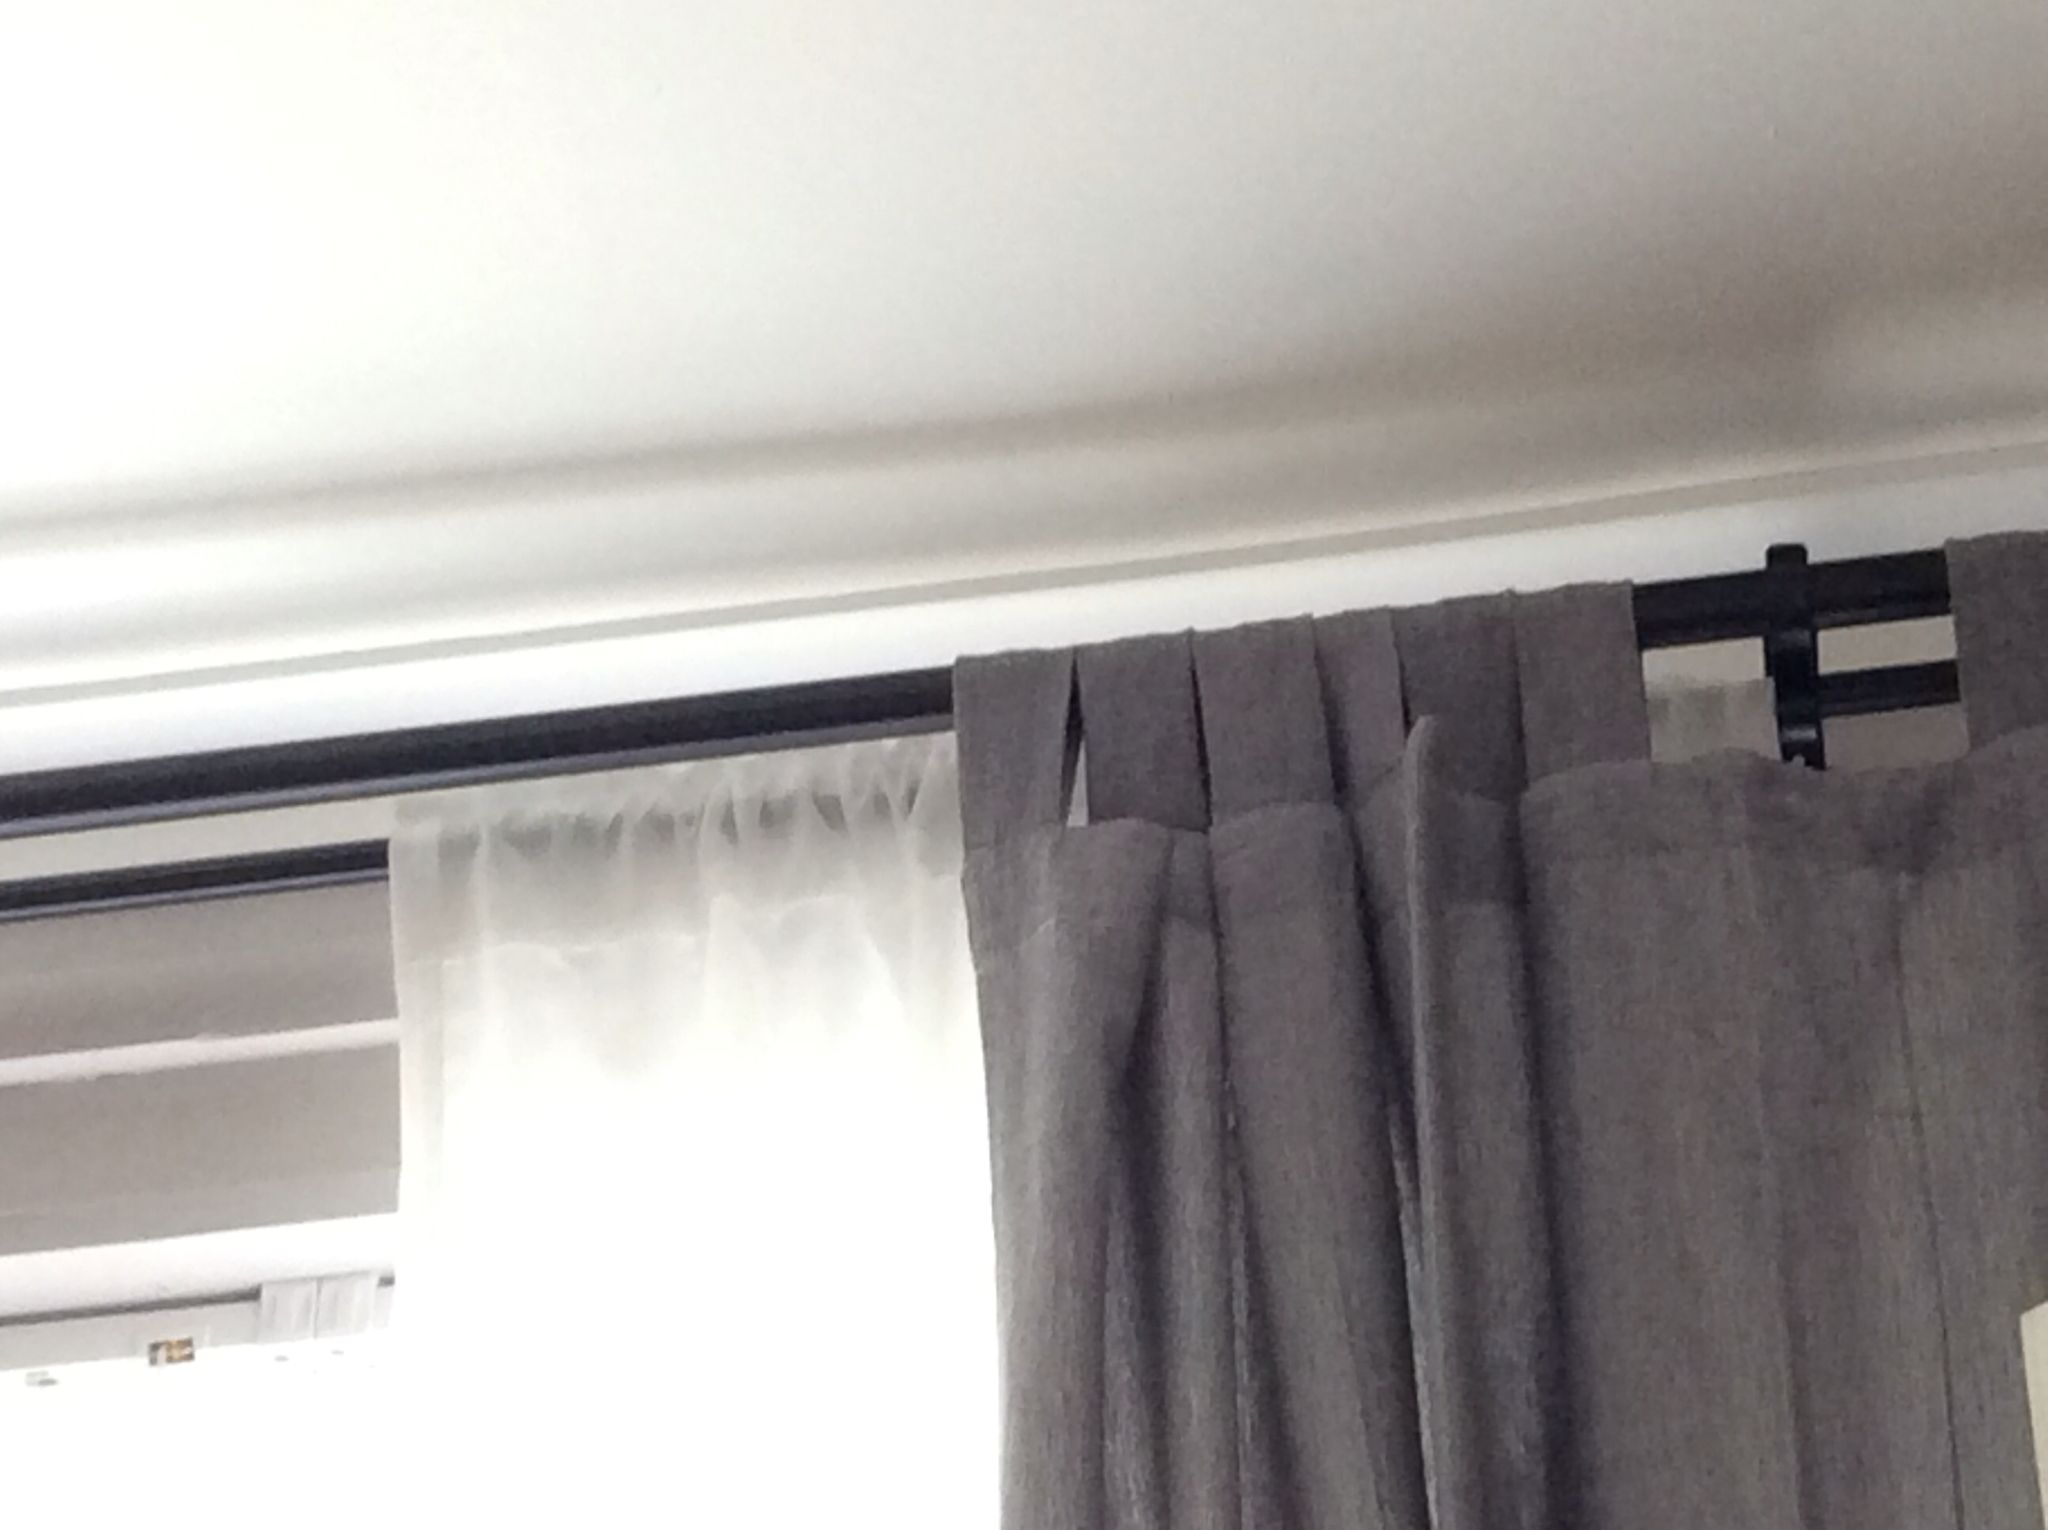 Double Curtain Rod From Ikea Adds Warmth To The Room I Think